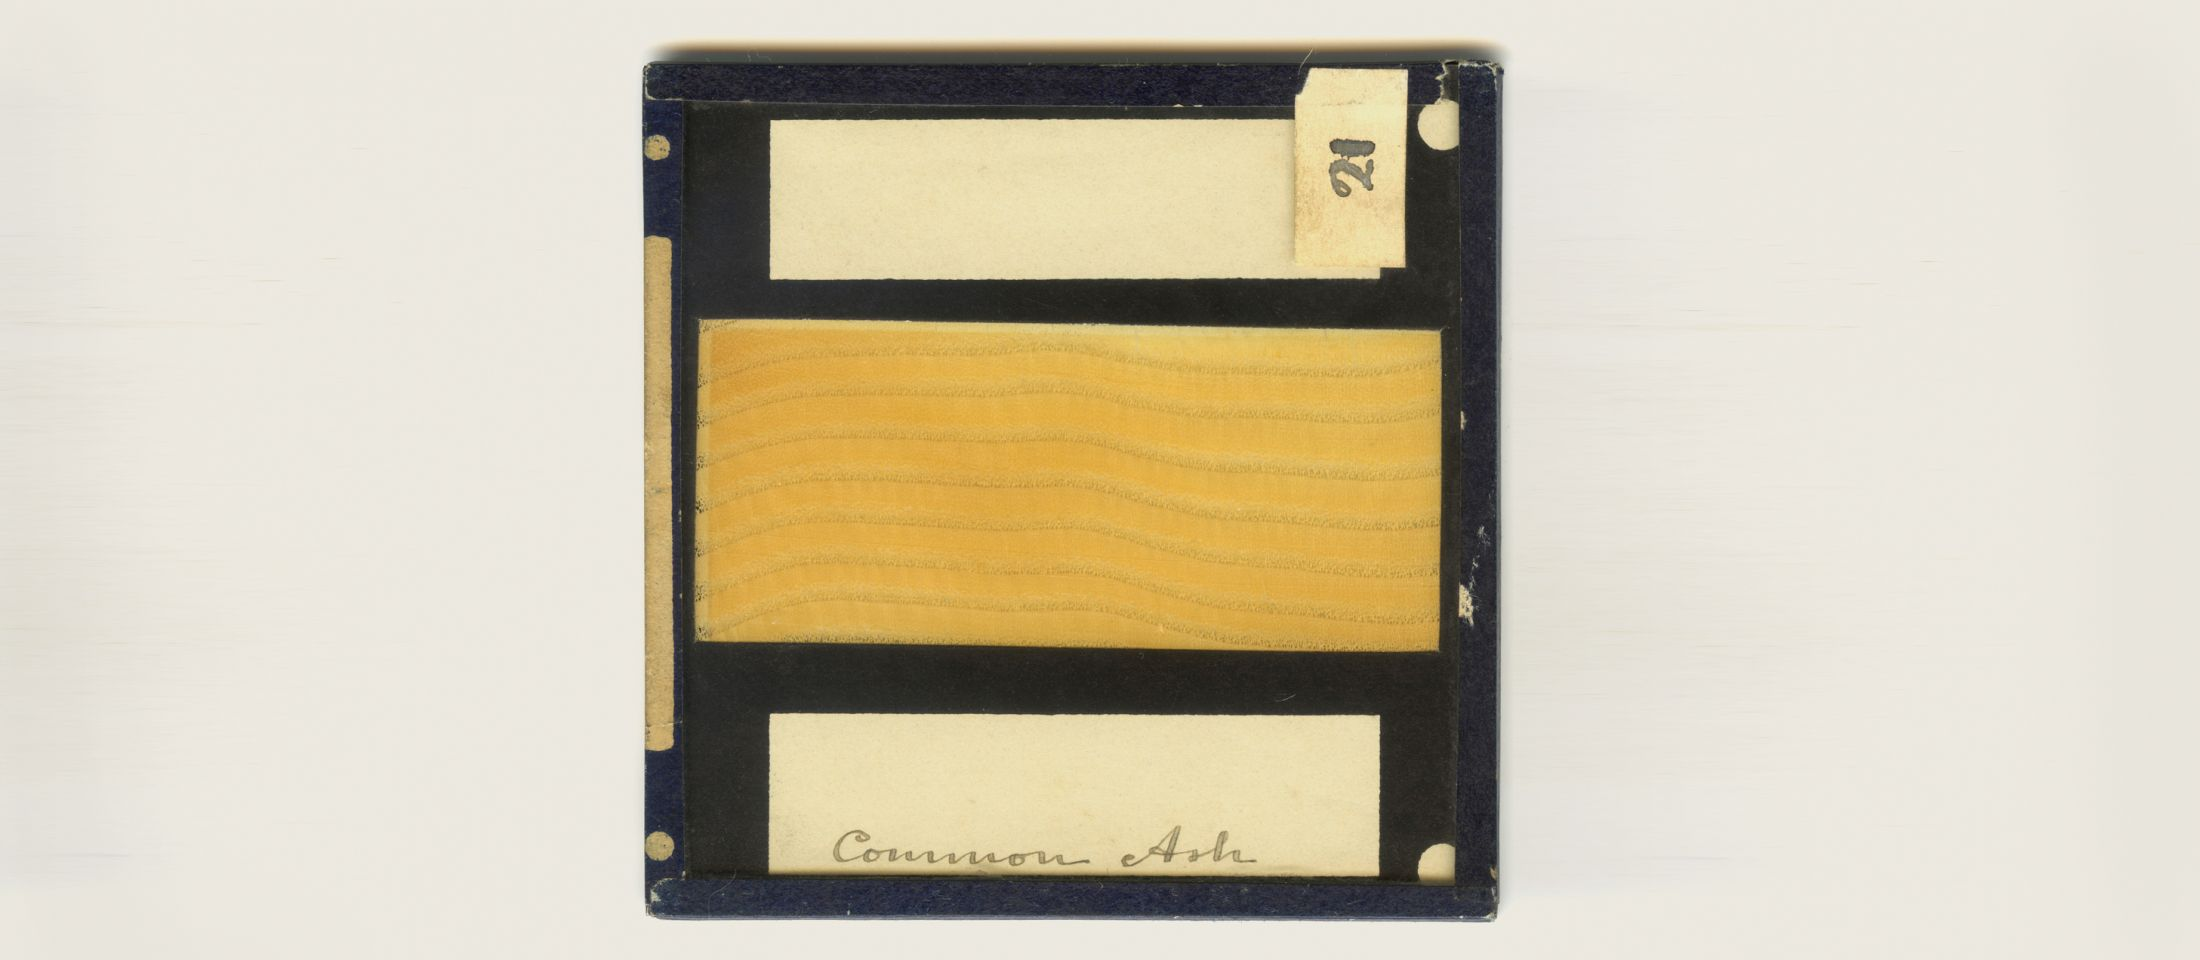 """""""Common Ash"""" slide, found during R&D. Photo: Ackroyd and Harvey"""